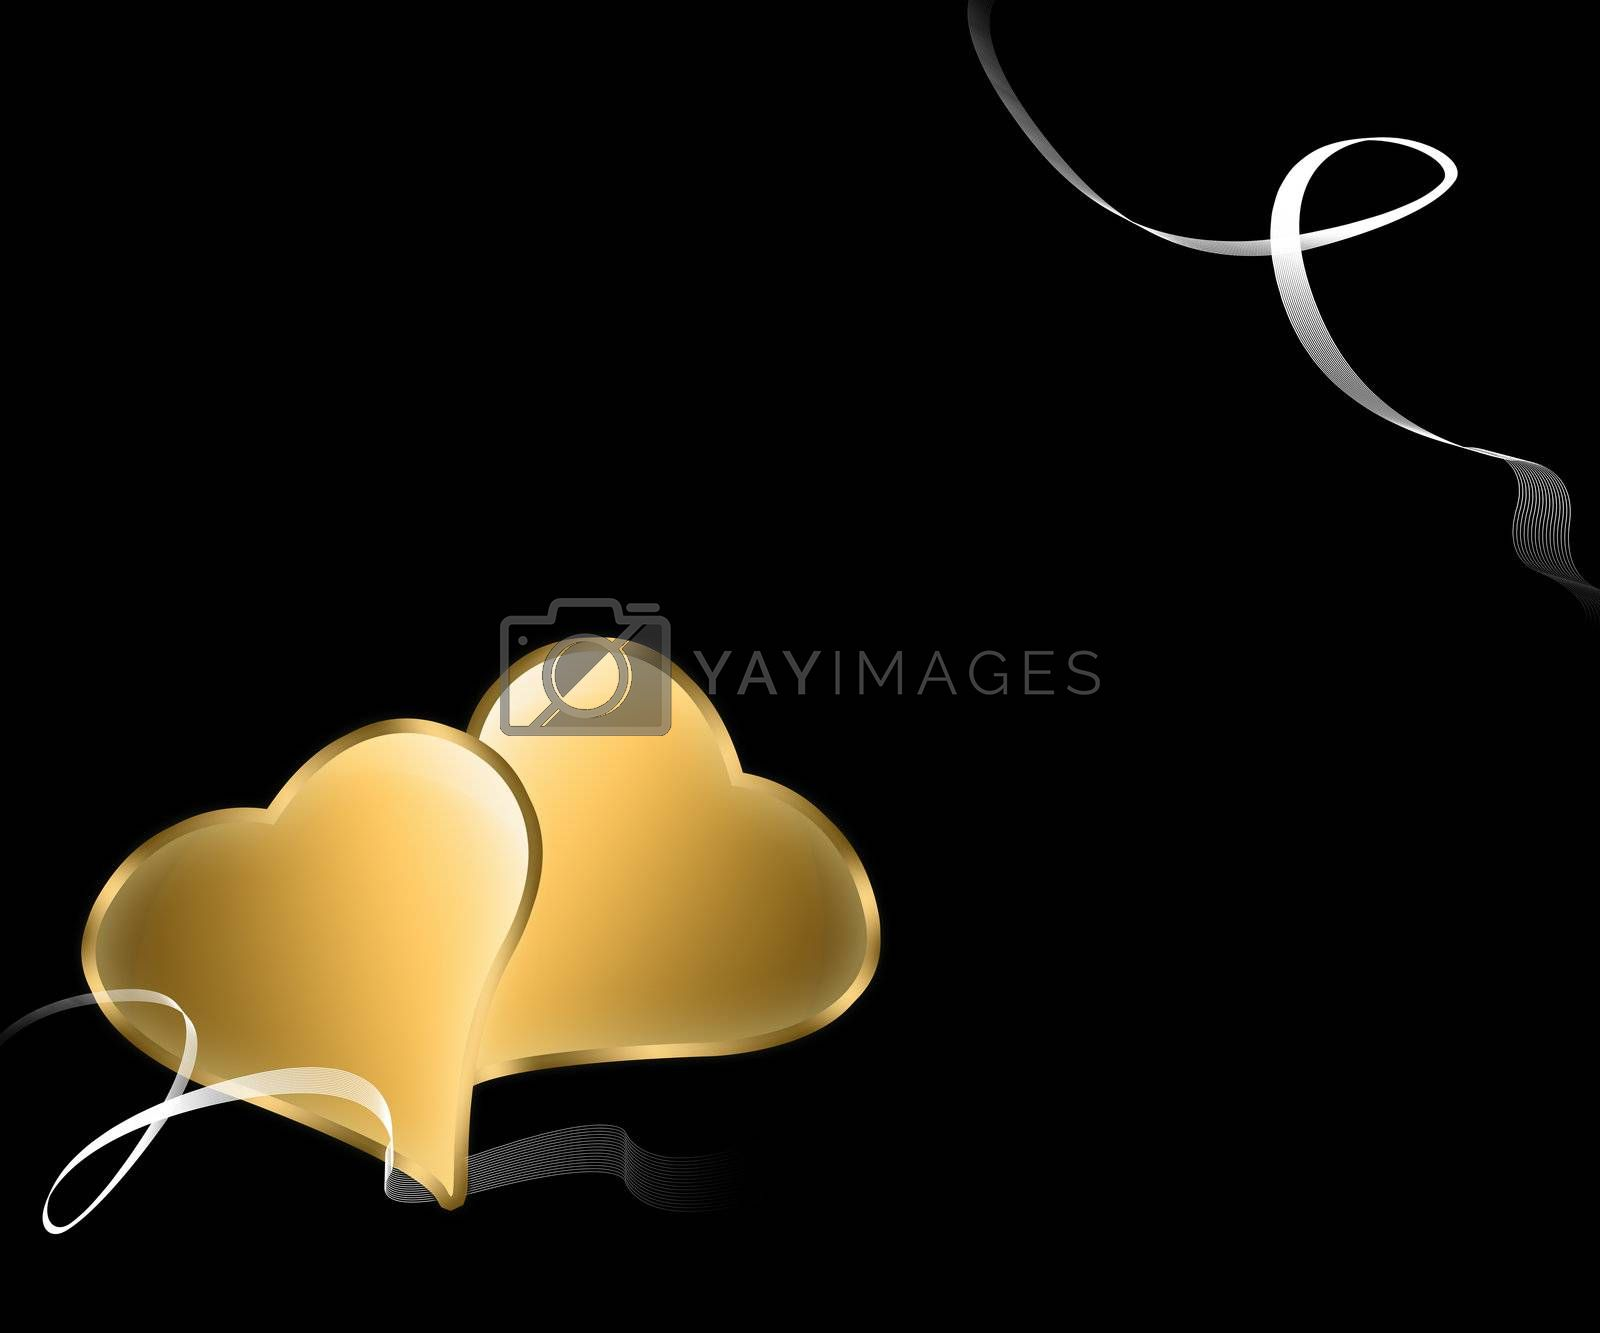 pair of golden hearts with Nasti white on black background